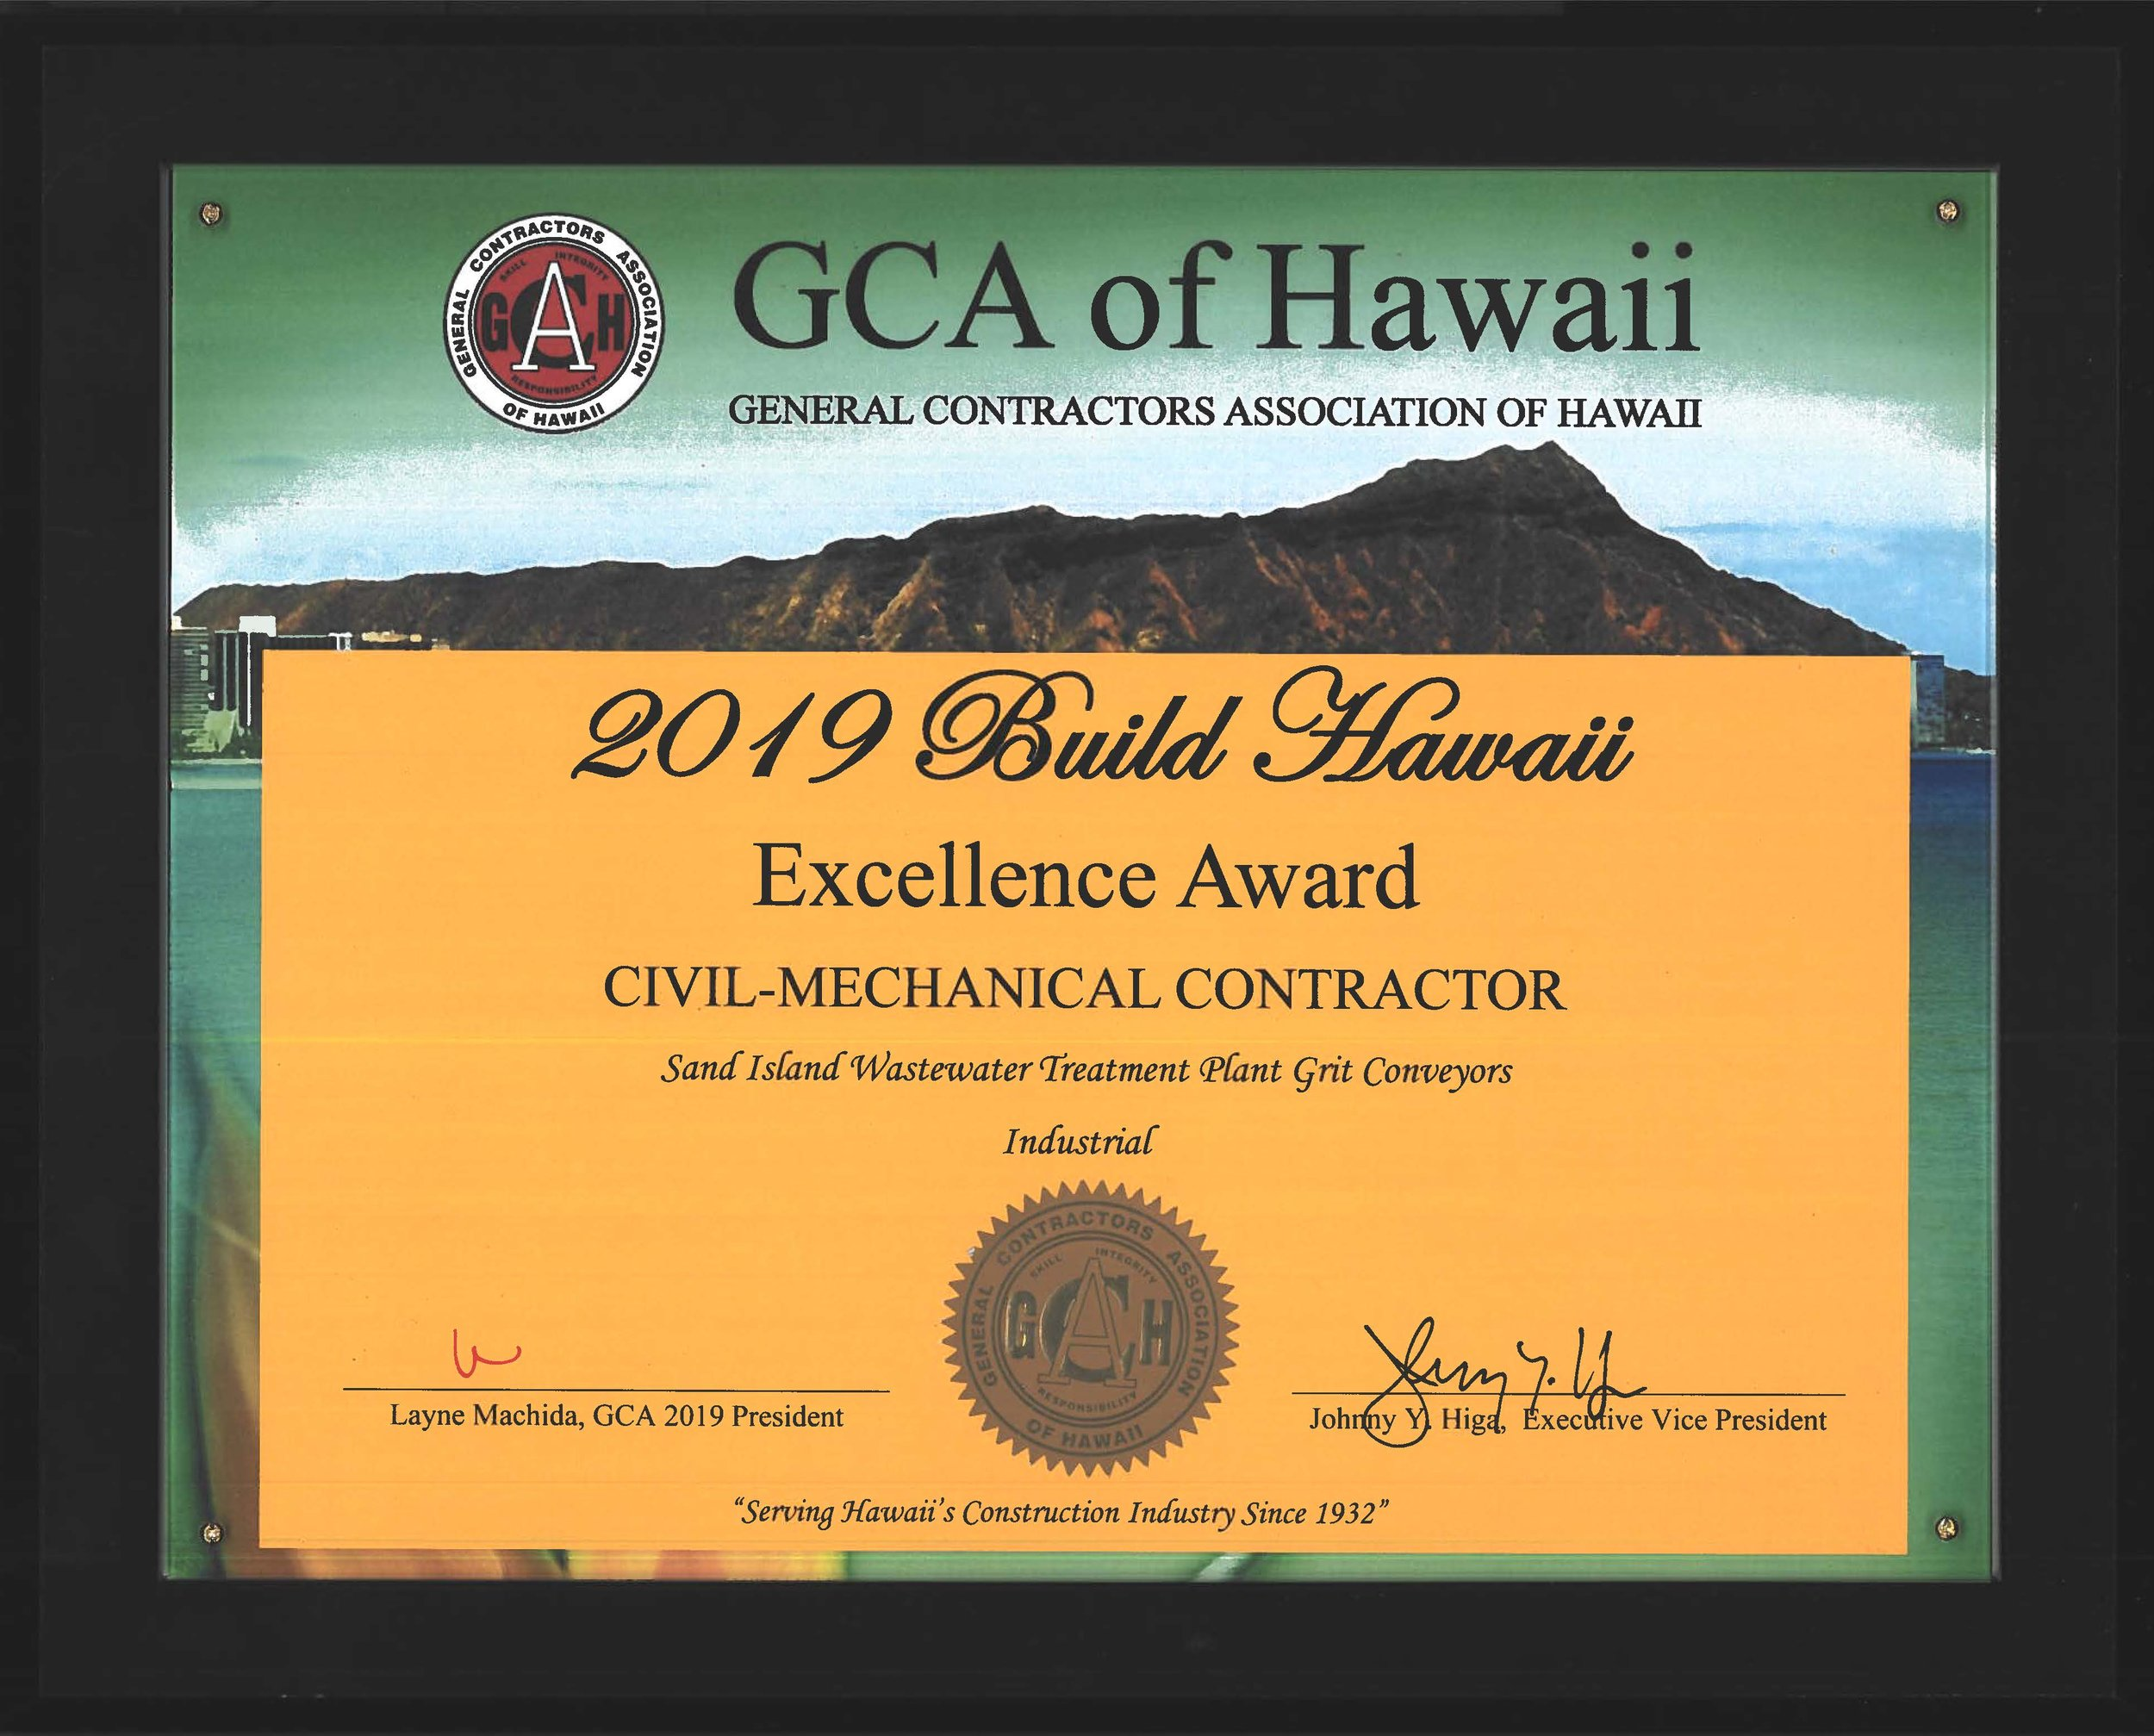 2019 Build Hawaii Excellence Award for Sand Island Wastewater Treatment Plant Grit Conveyors (GCA of Hawaii)